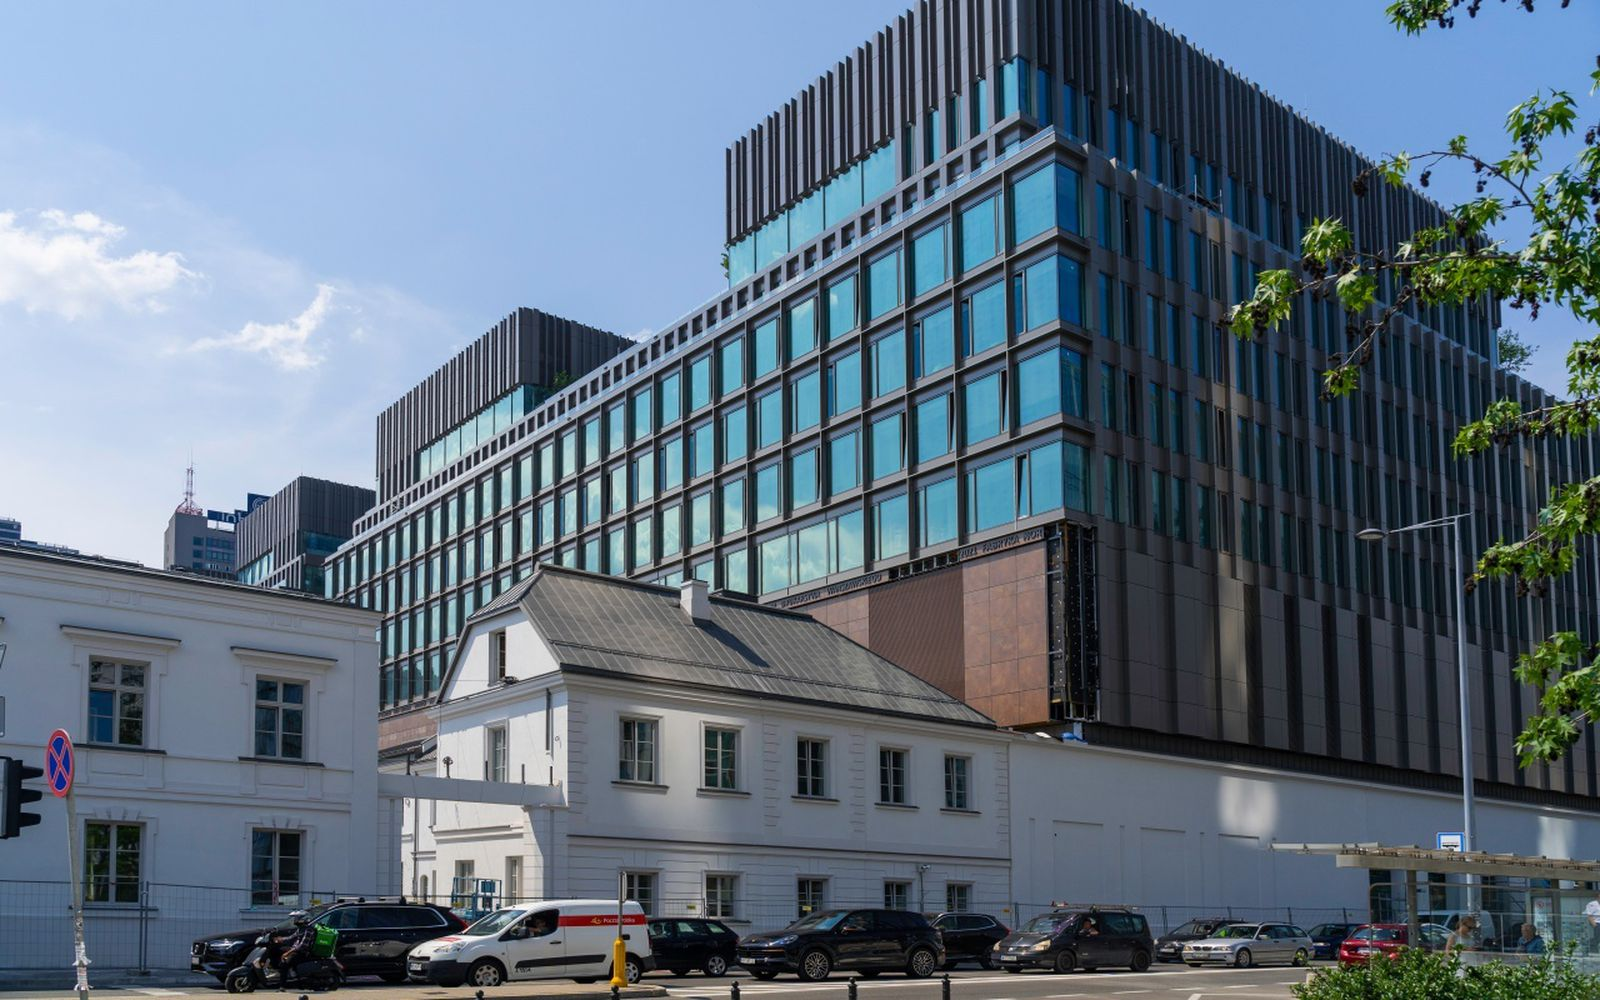 Apple Museum With 1,500 Exhibits to Open in Poland